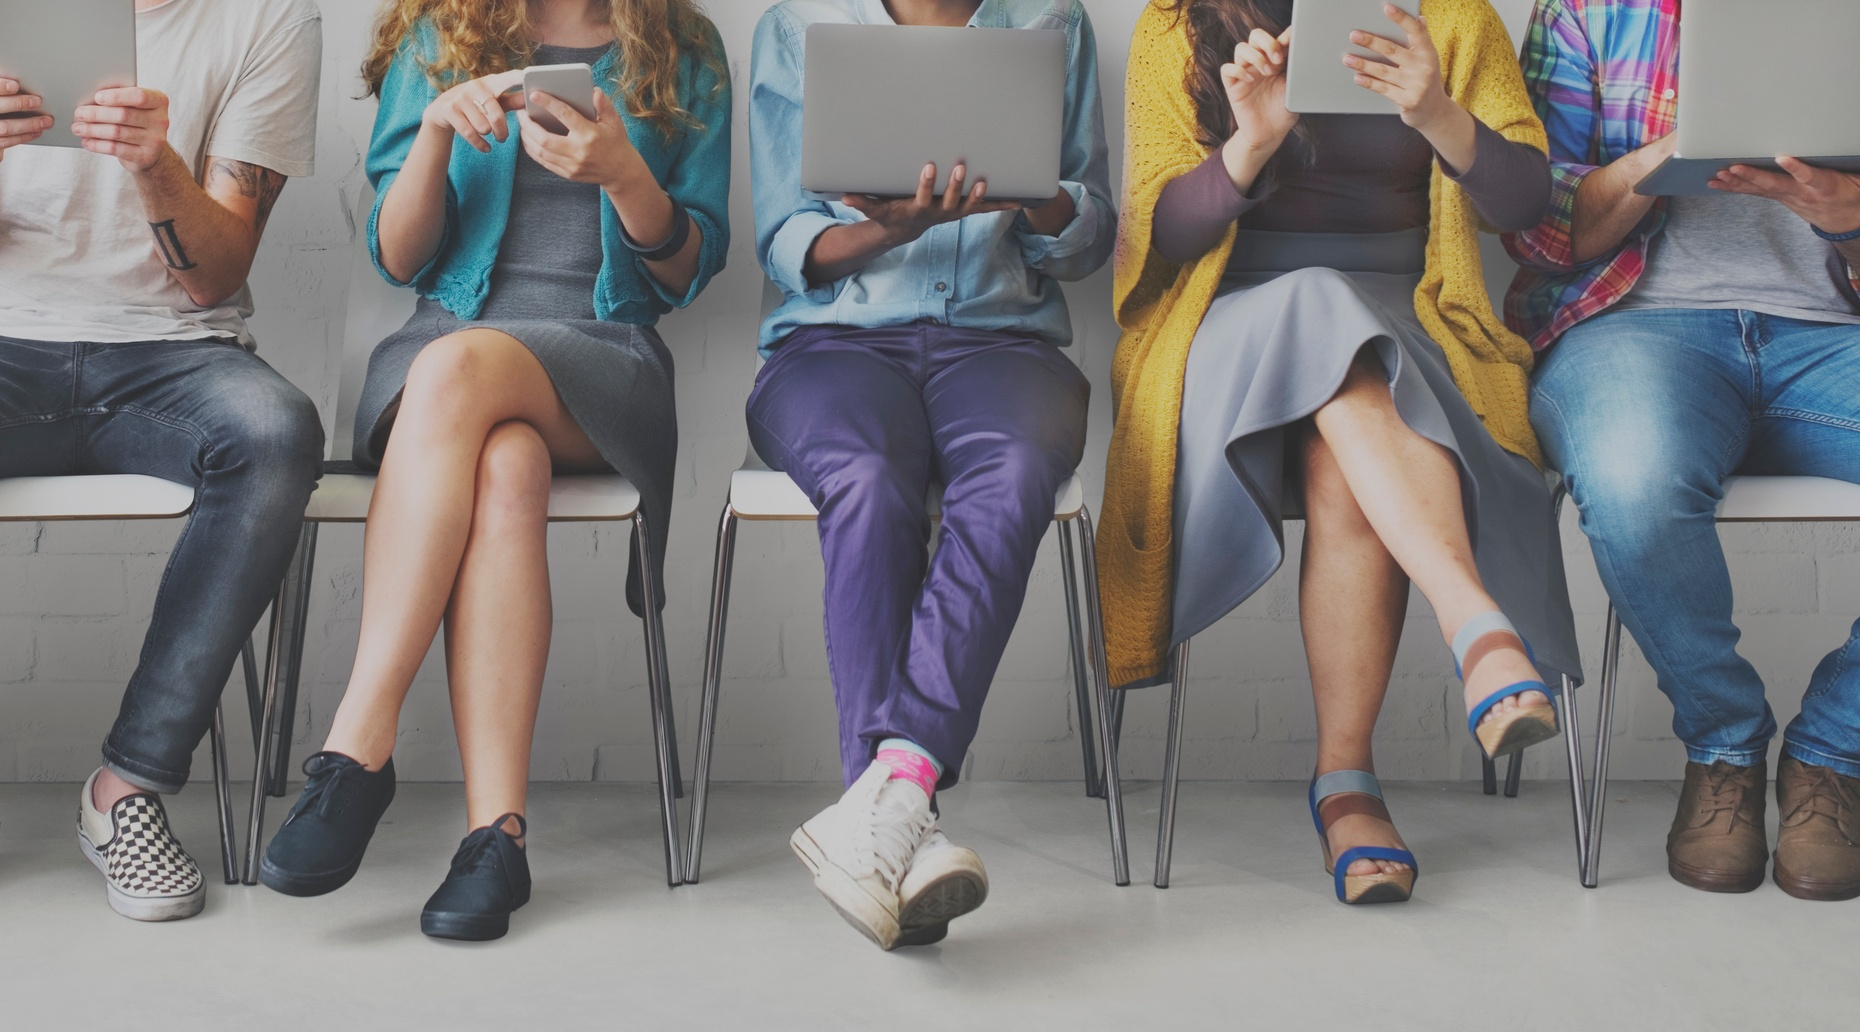 5 Employment Myths About Millennials Every Employer Should Know - Featured Image